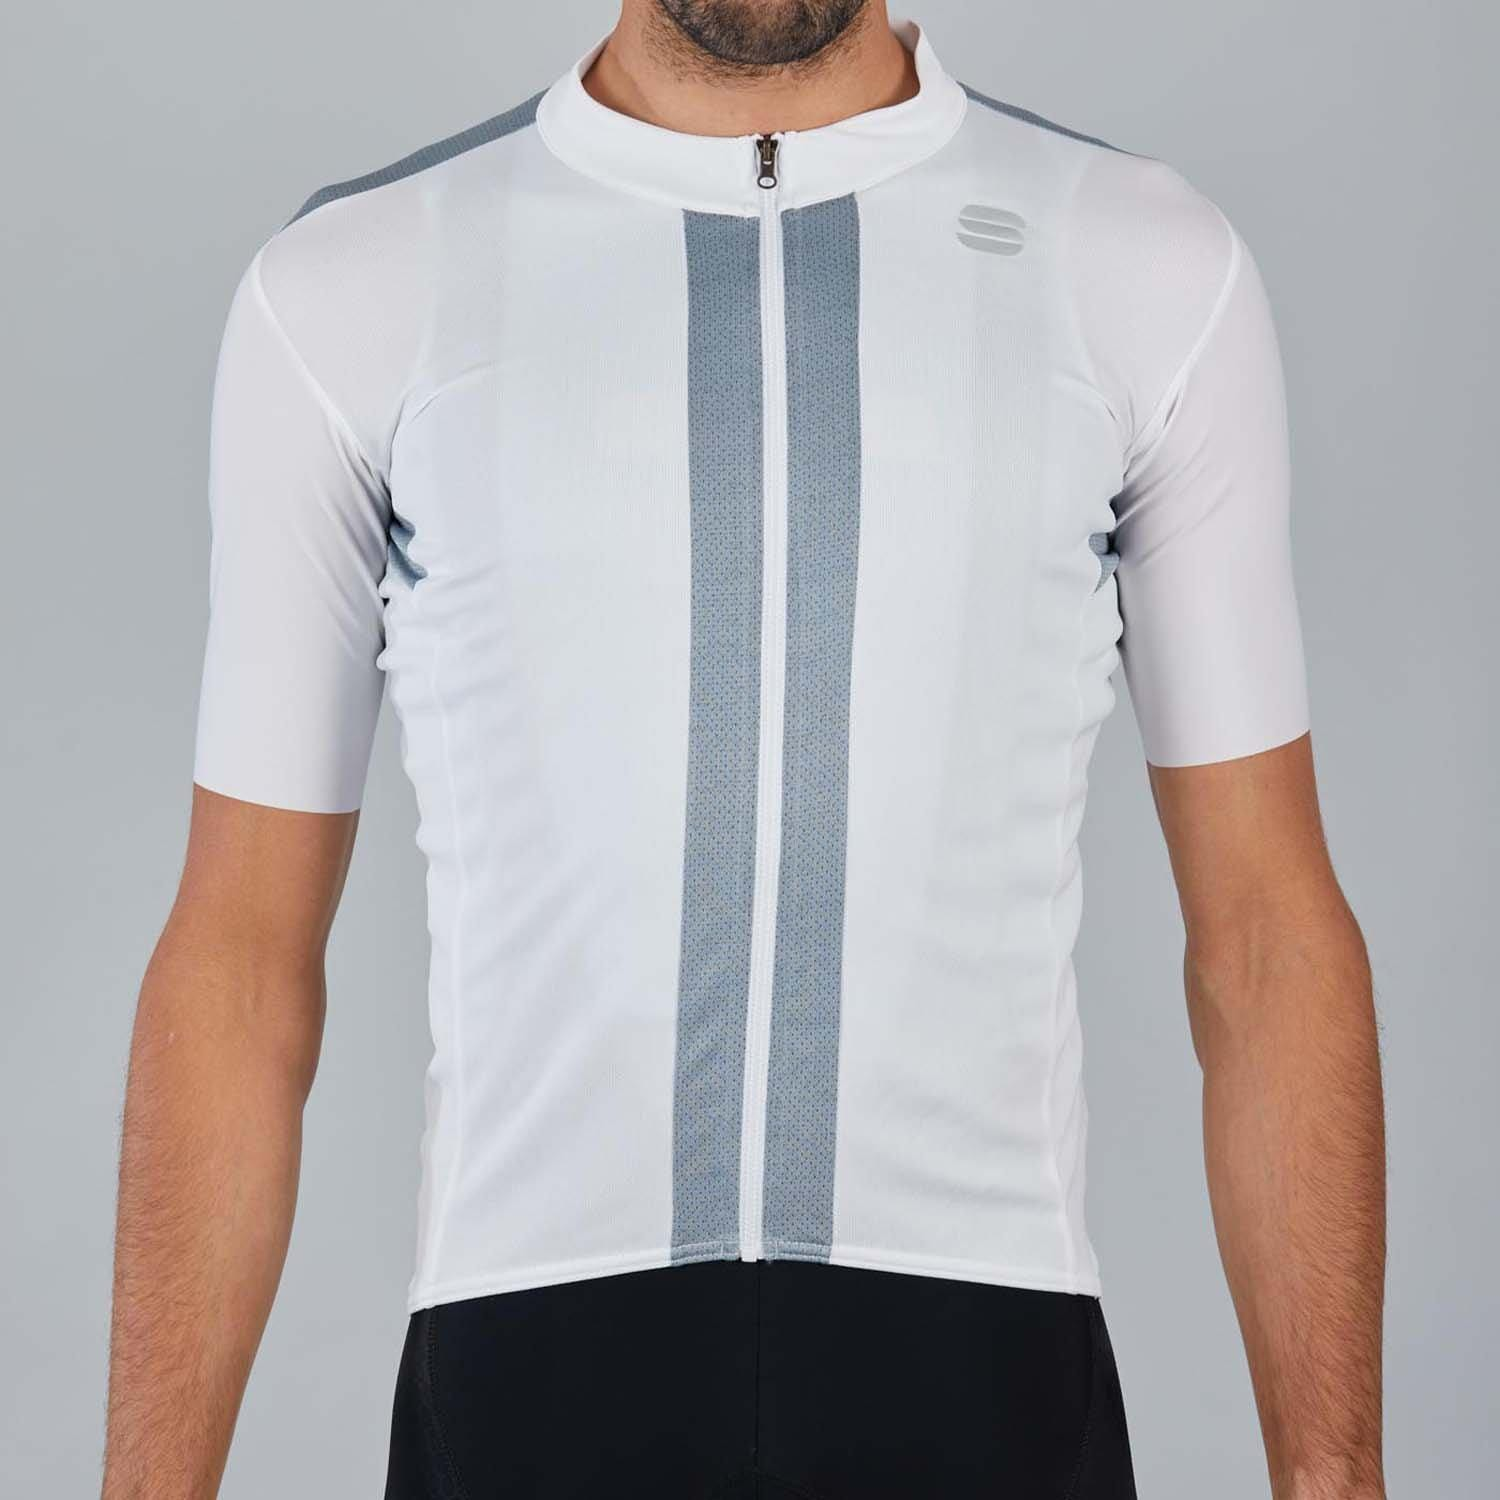 Sportful-Sportful Strike Jersey-White/Black-XS-SF200121011-saddleback-elite-performance-cycling